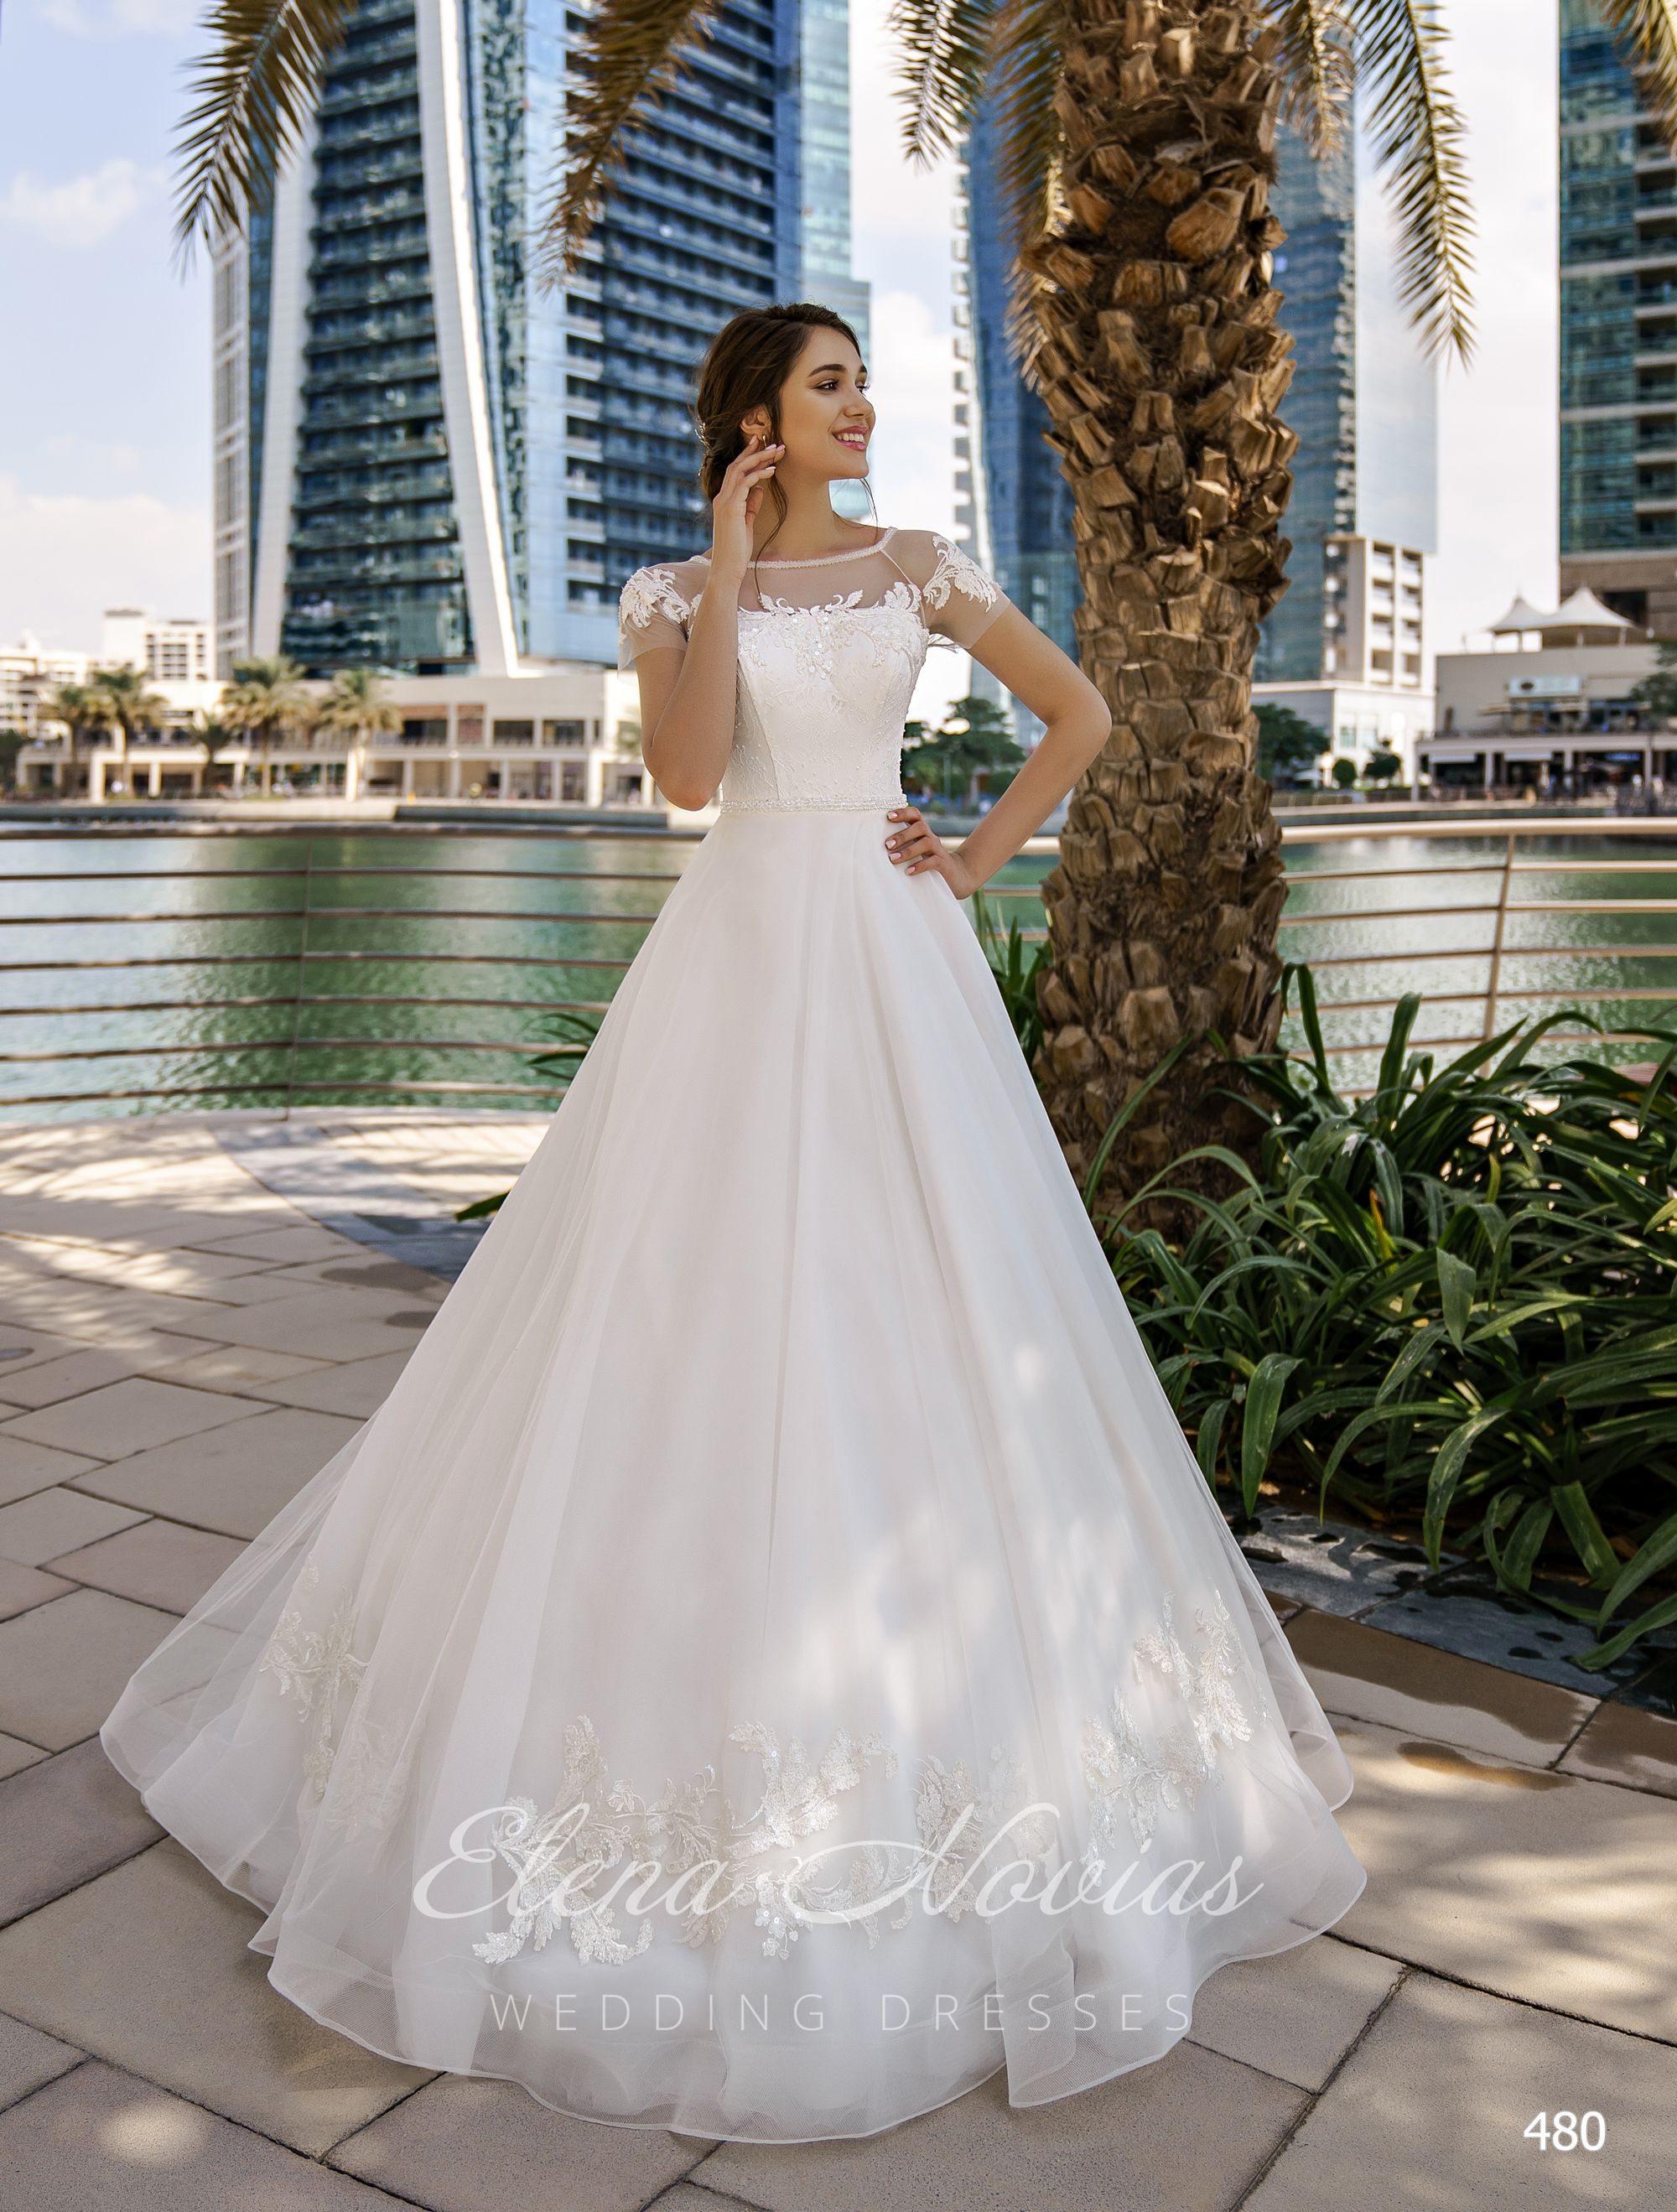 Wedding dresses 480